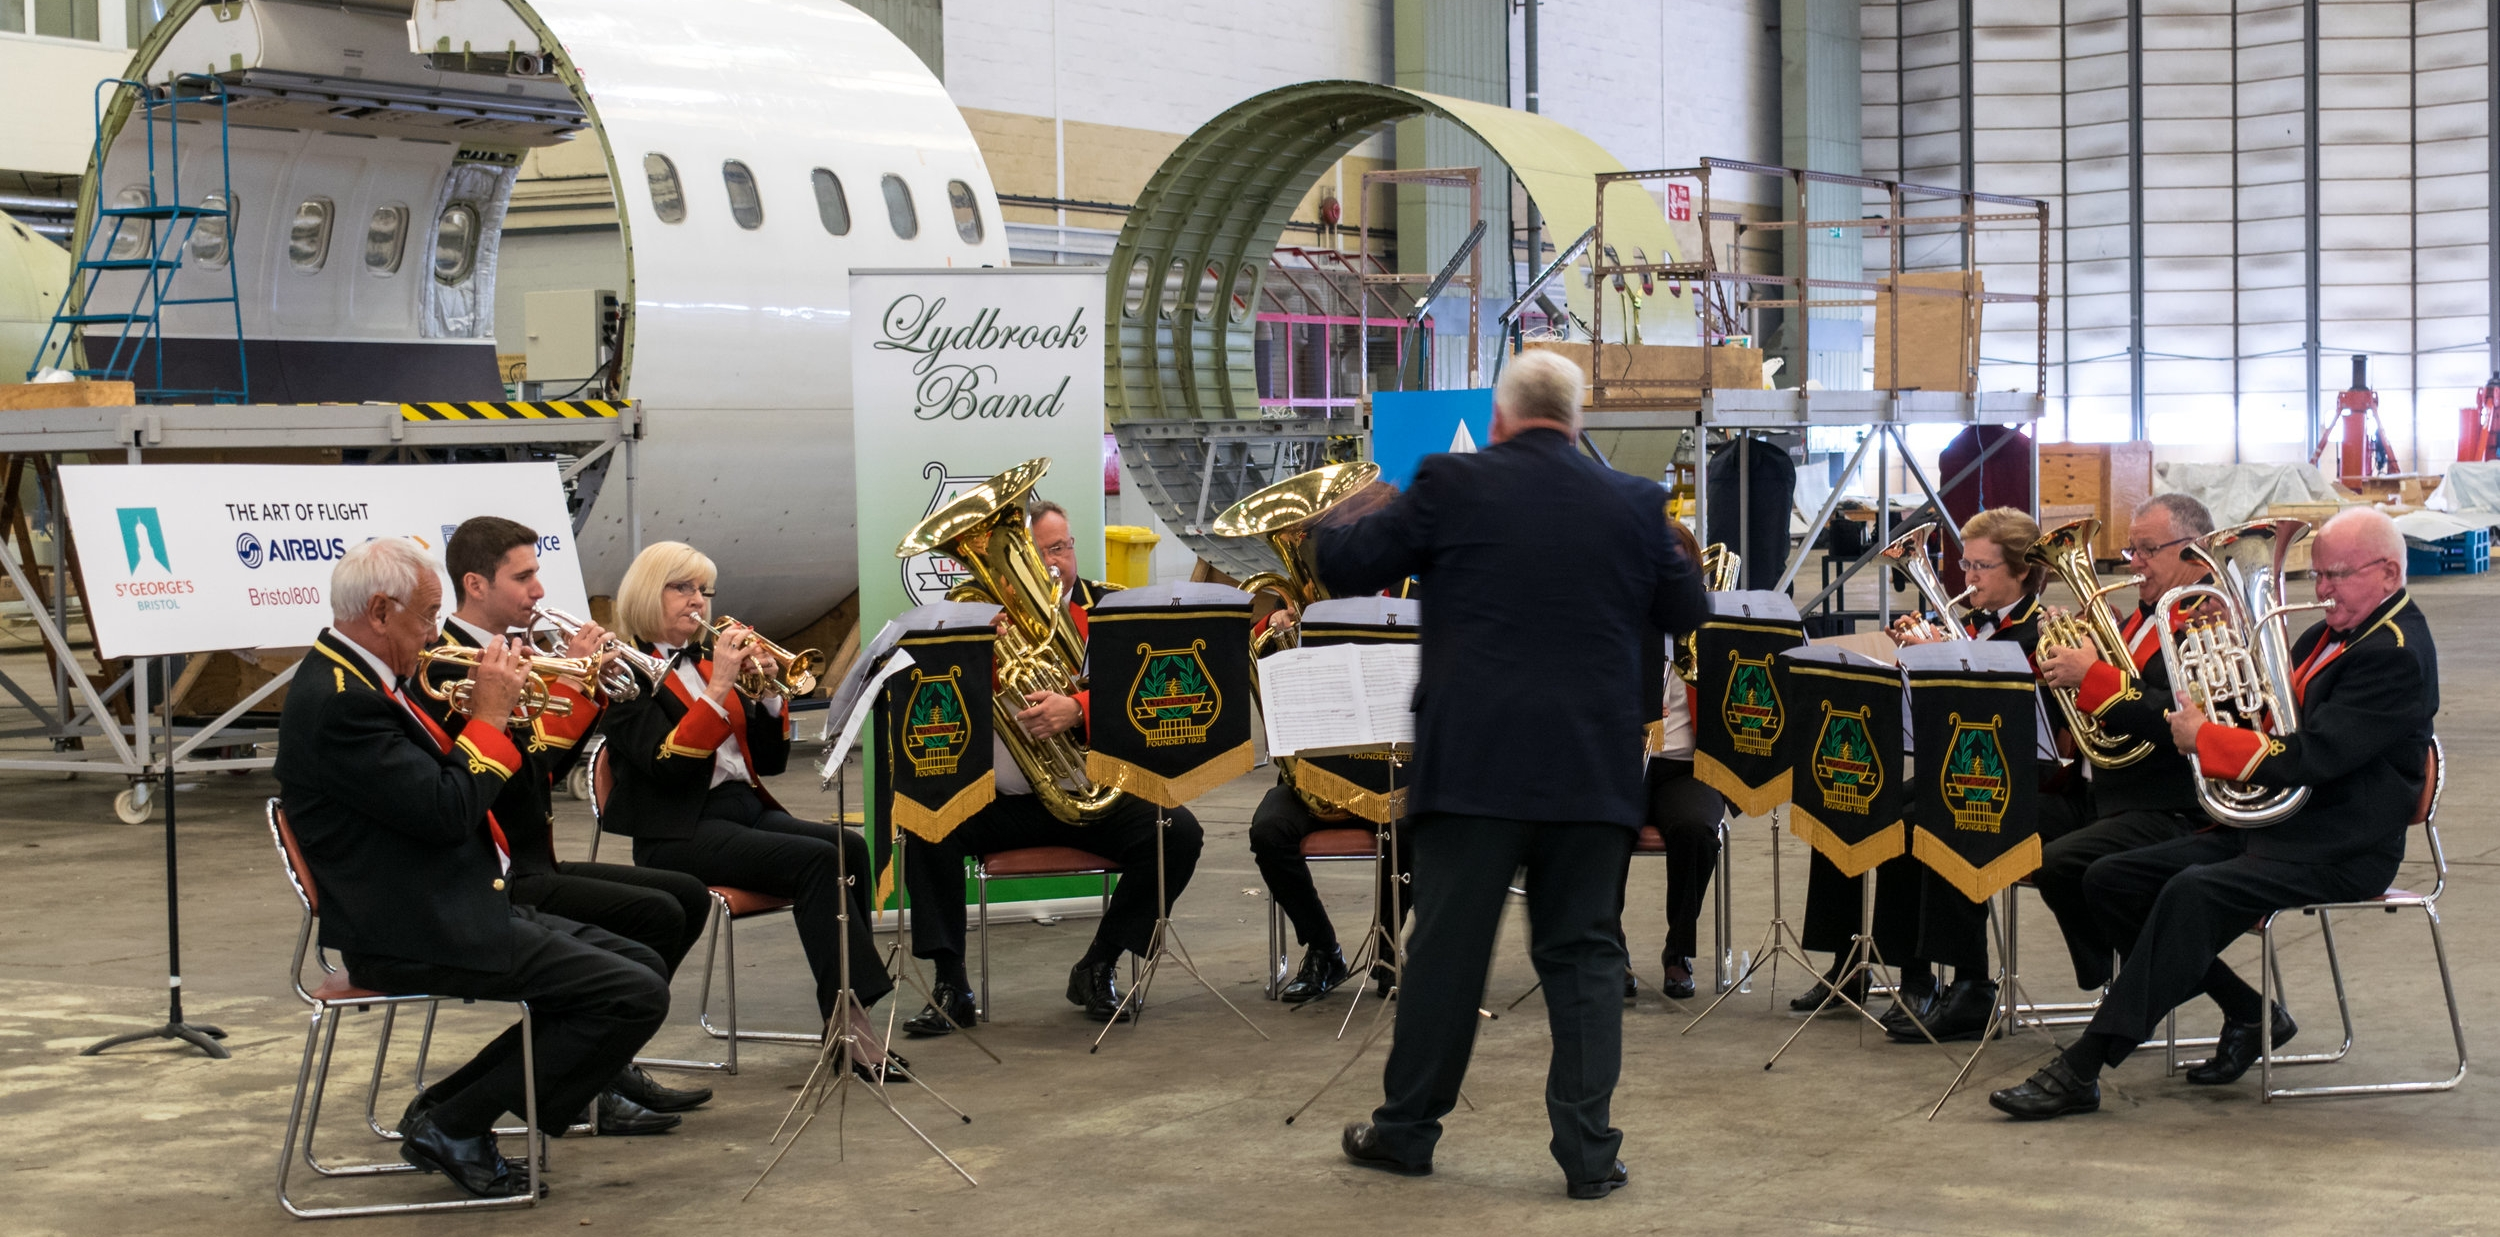 A preview of Innovation 216 was performed on 14th September 2016 in the historic Brabazon Hangar